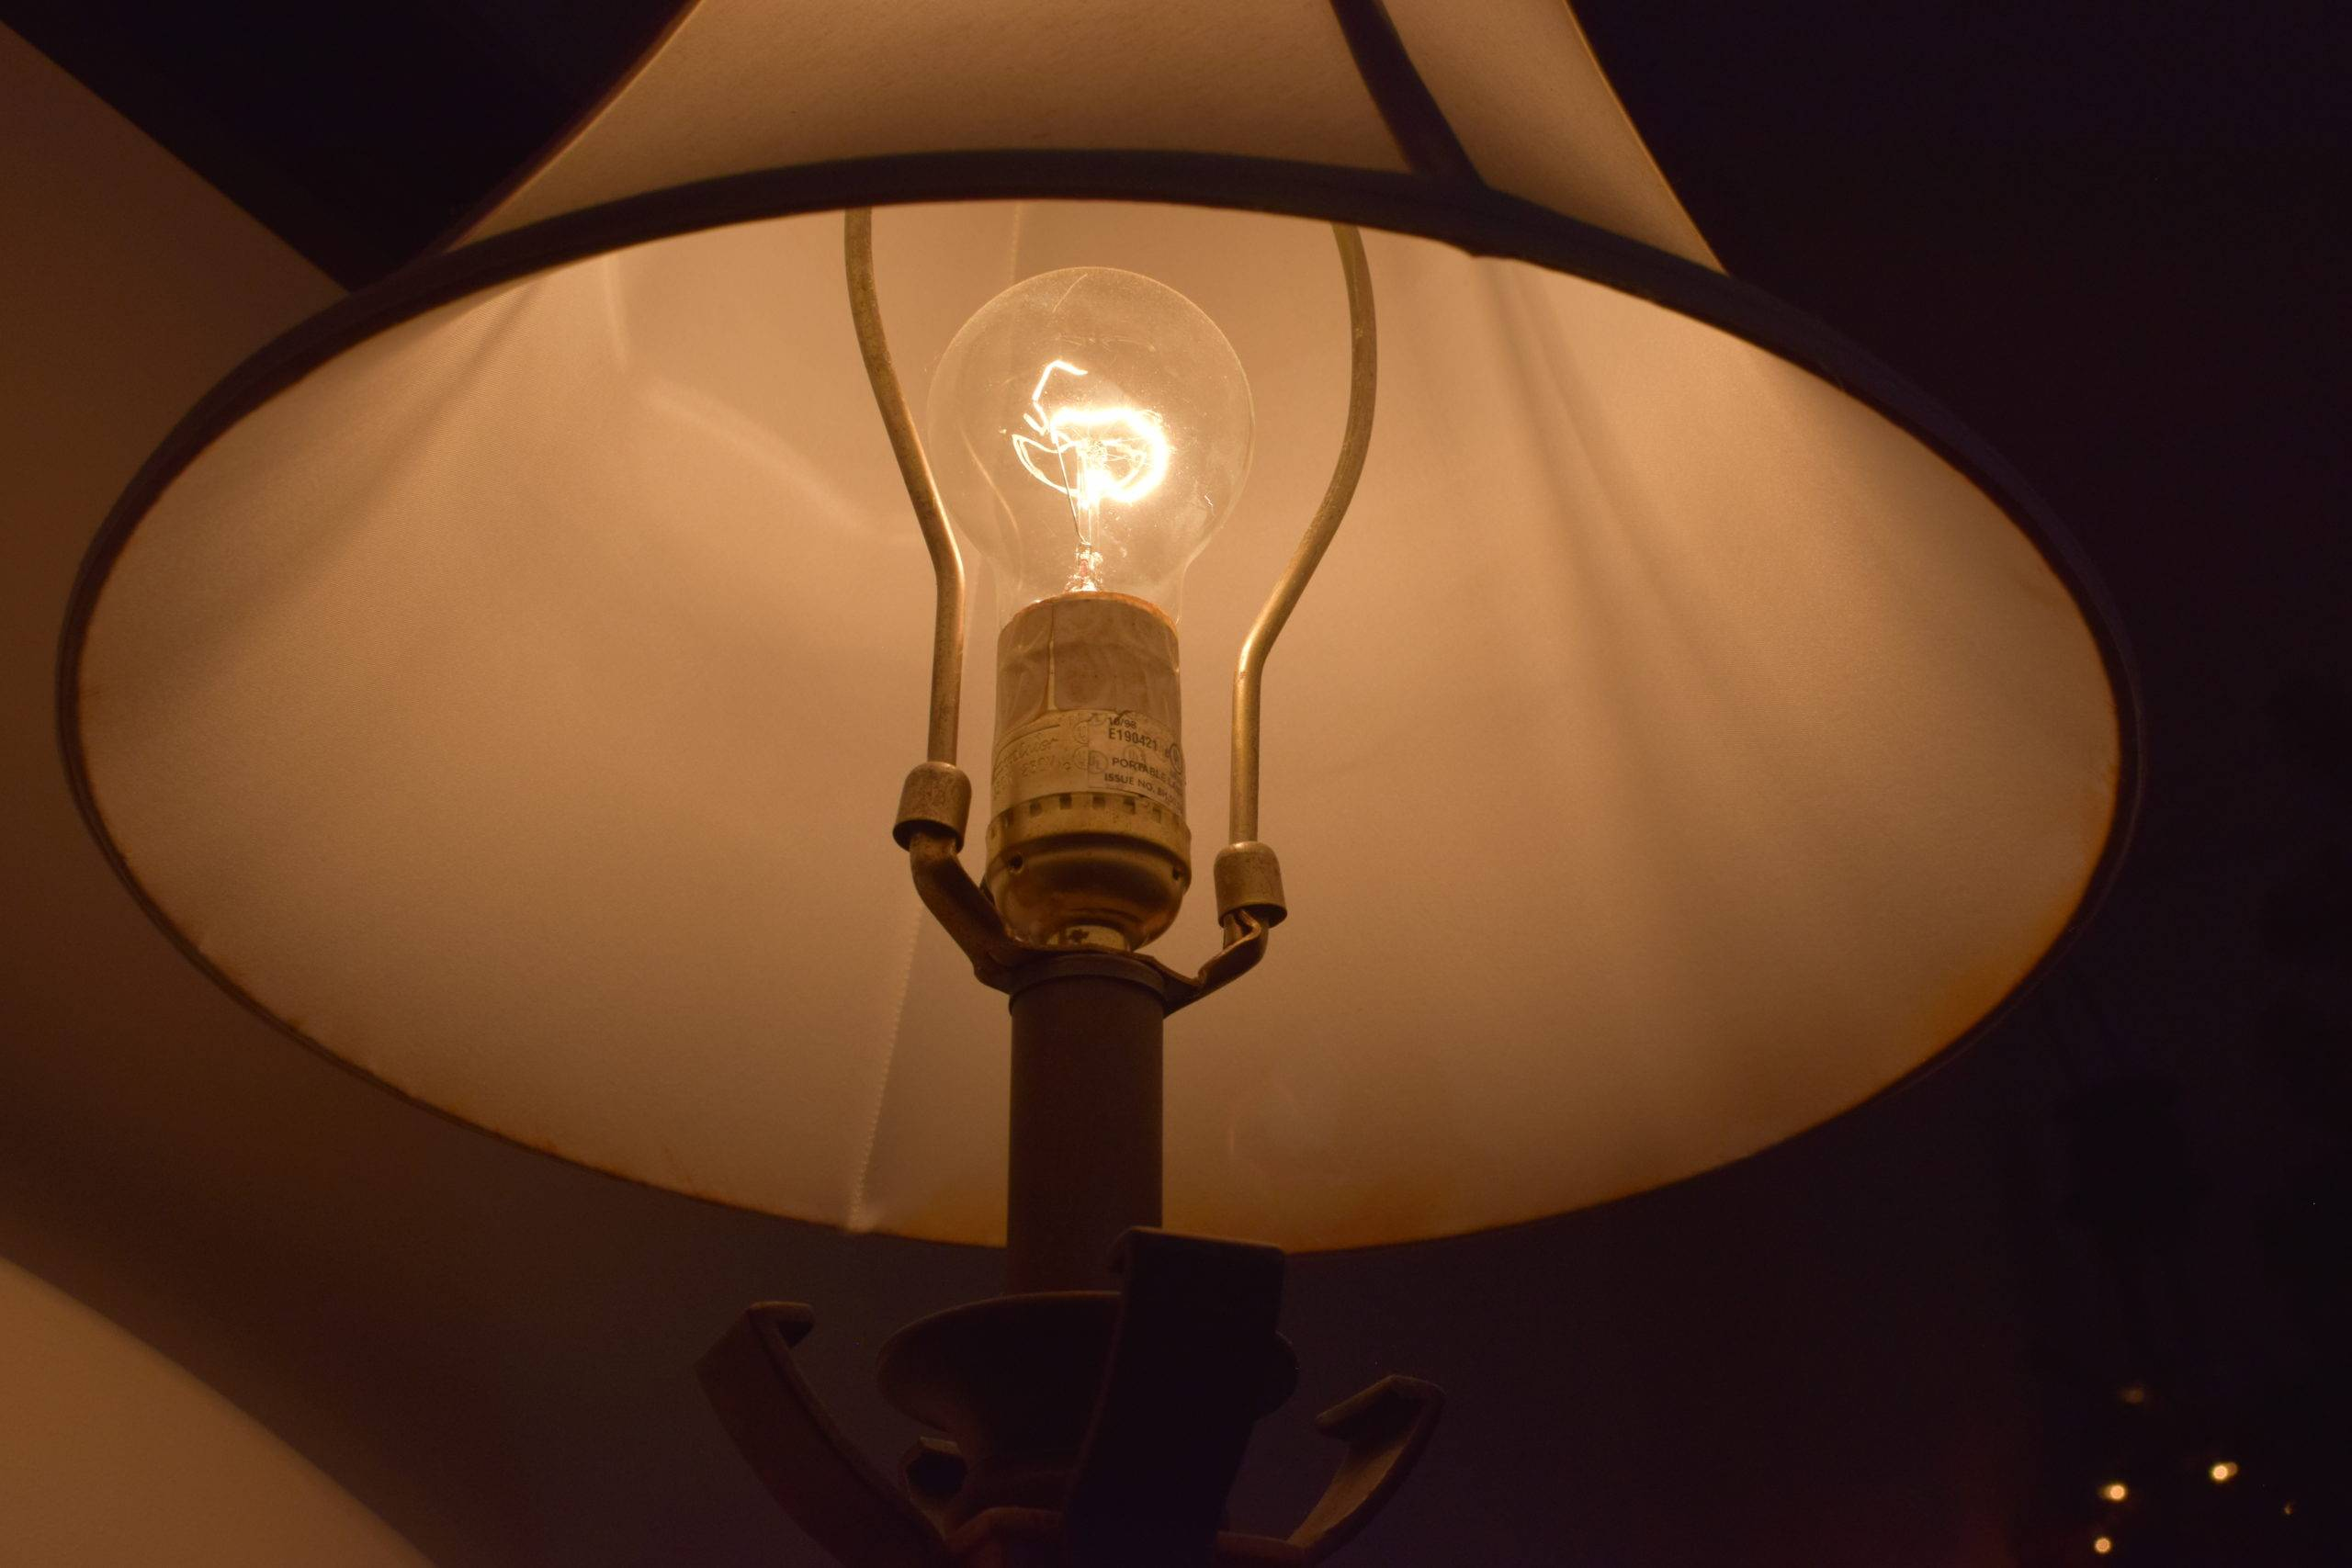 Close up photo of light bulb in a lamp